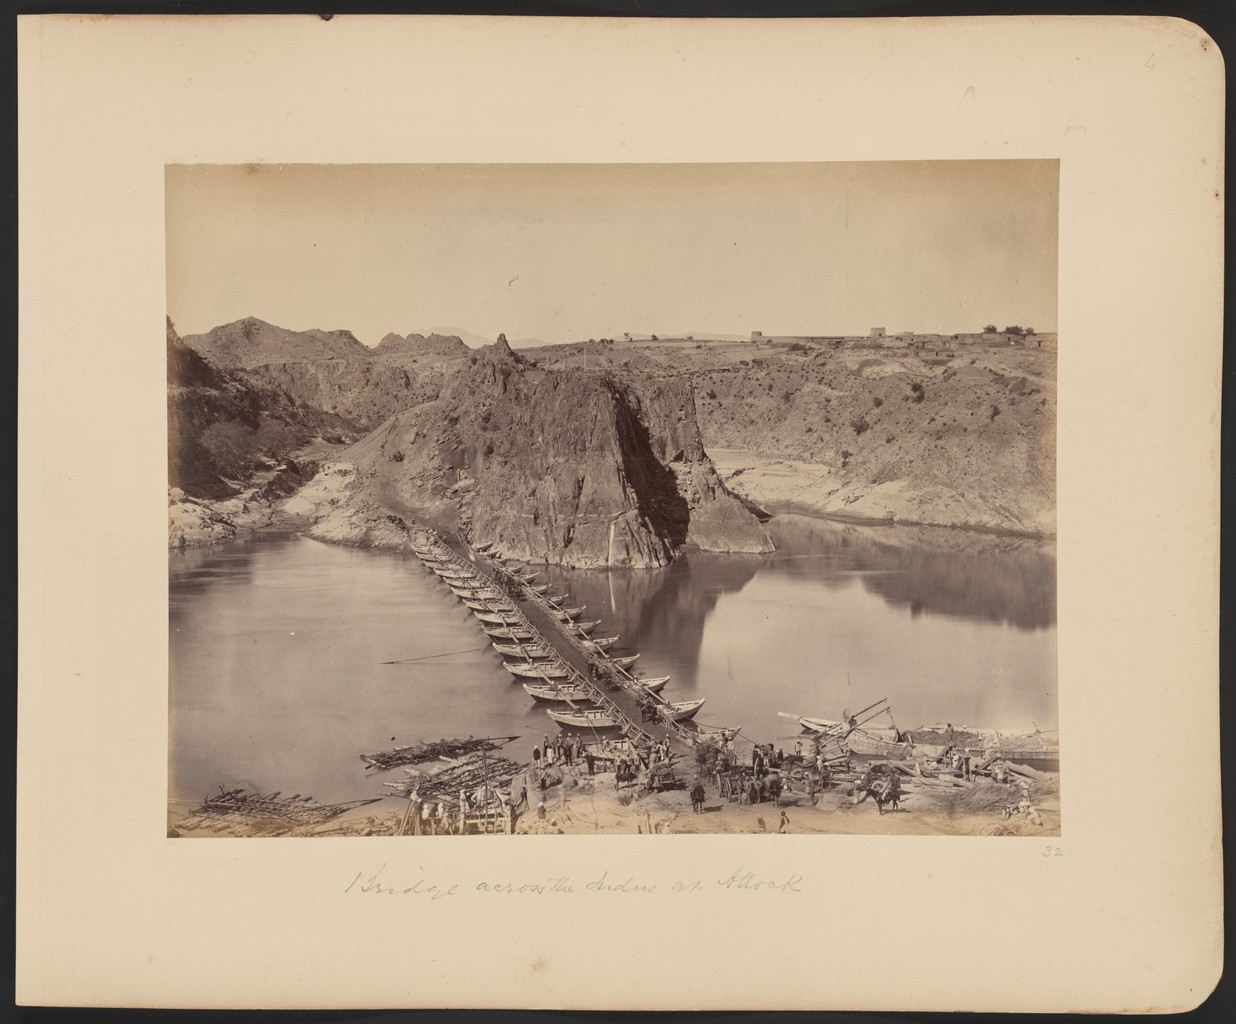 A pontoon bridge across the Indus River during the Second Anglo-Afghan War of 1878-1880.